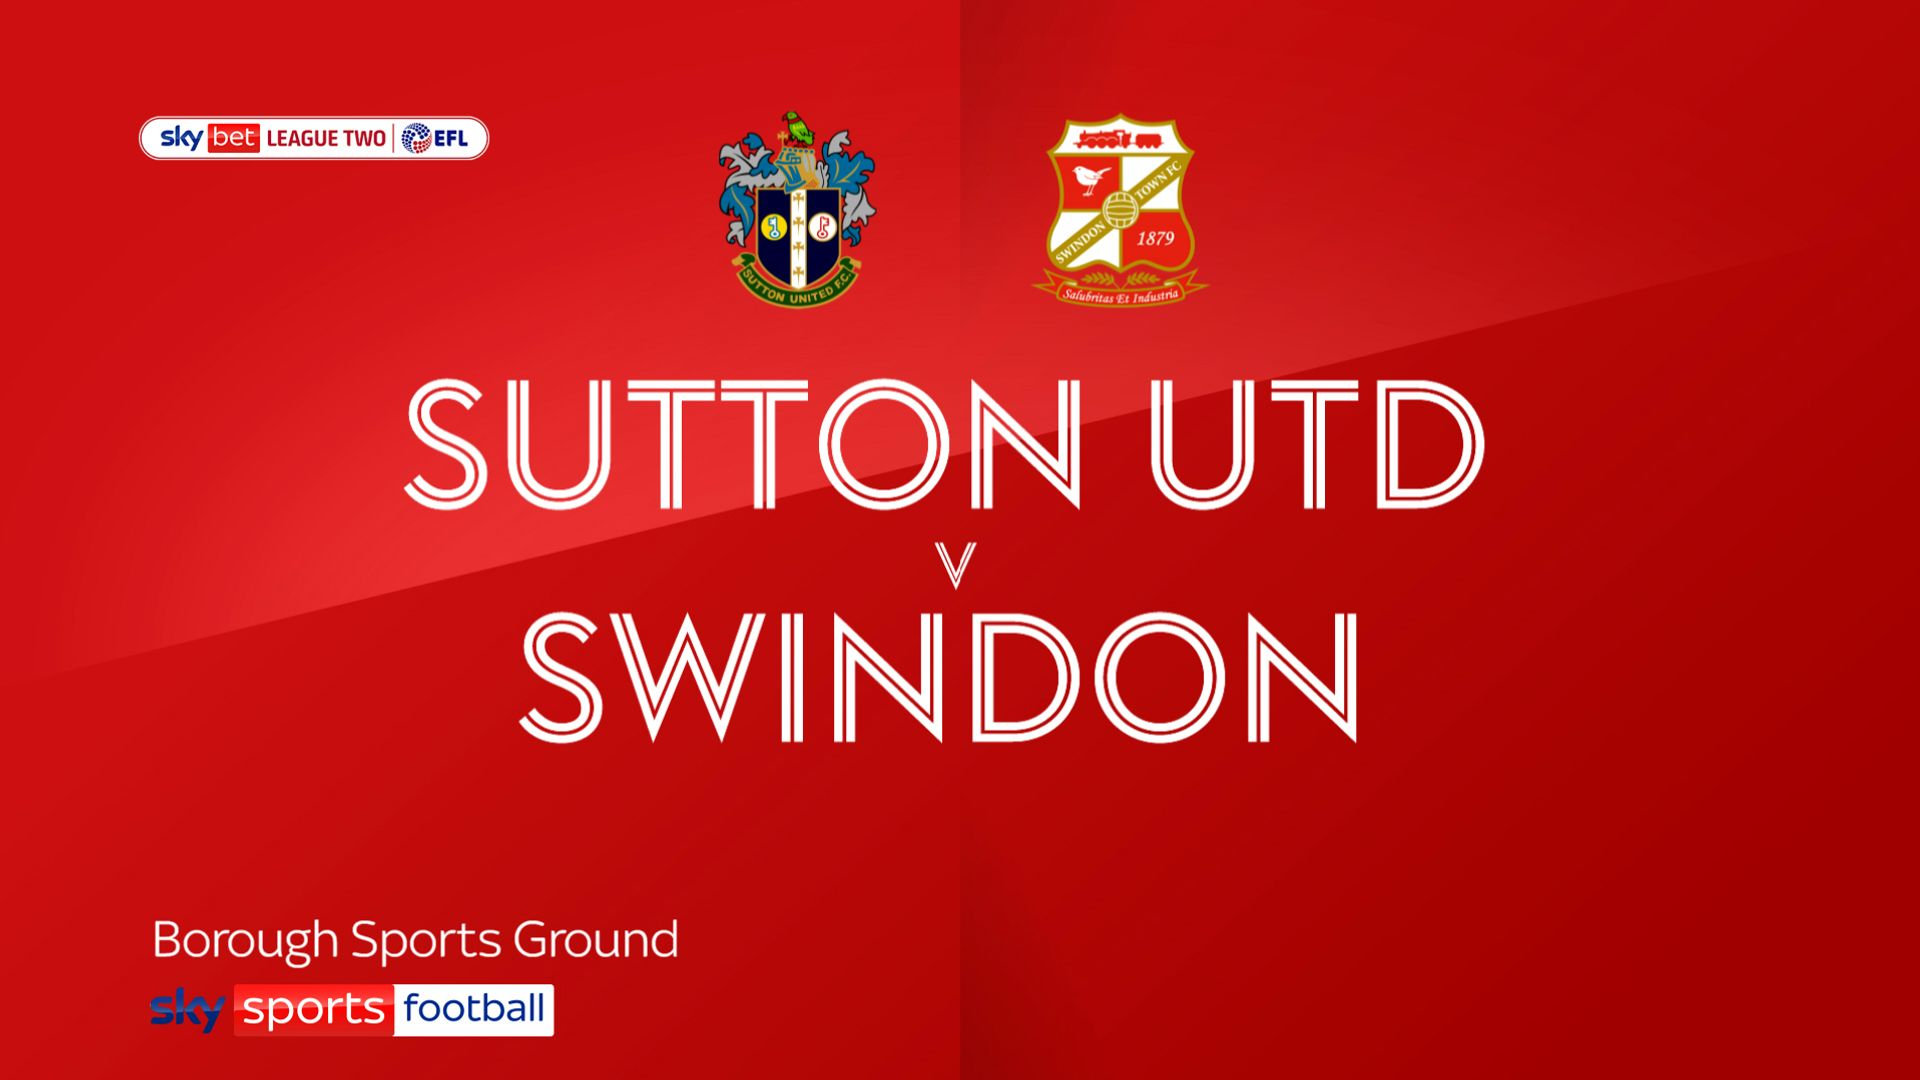 Swindon see off Sutton to move third